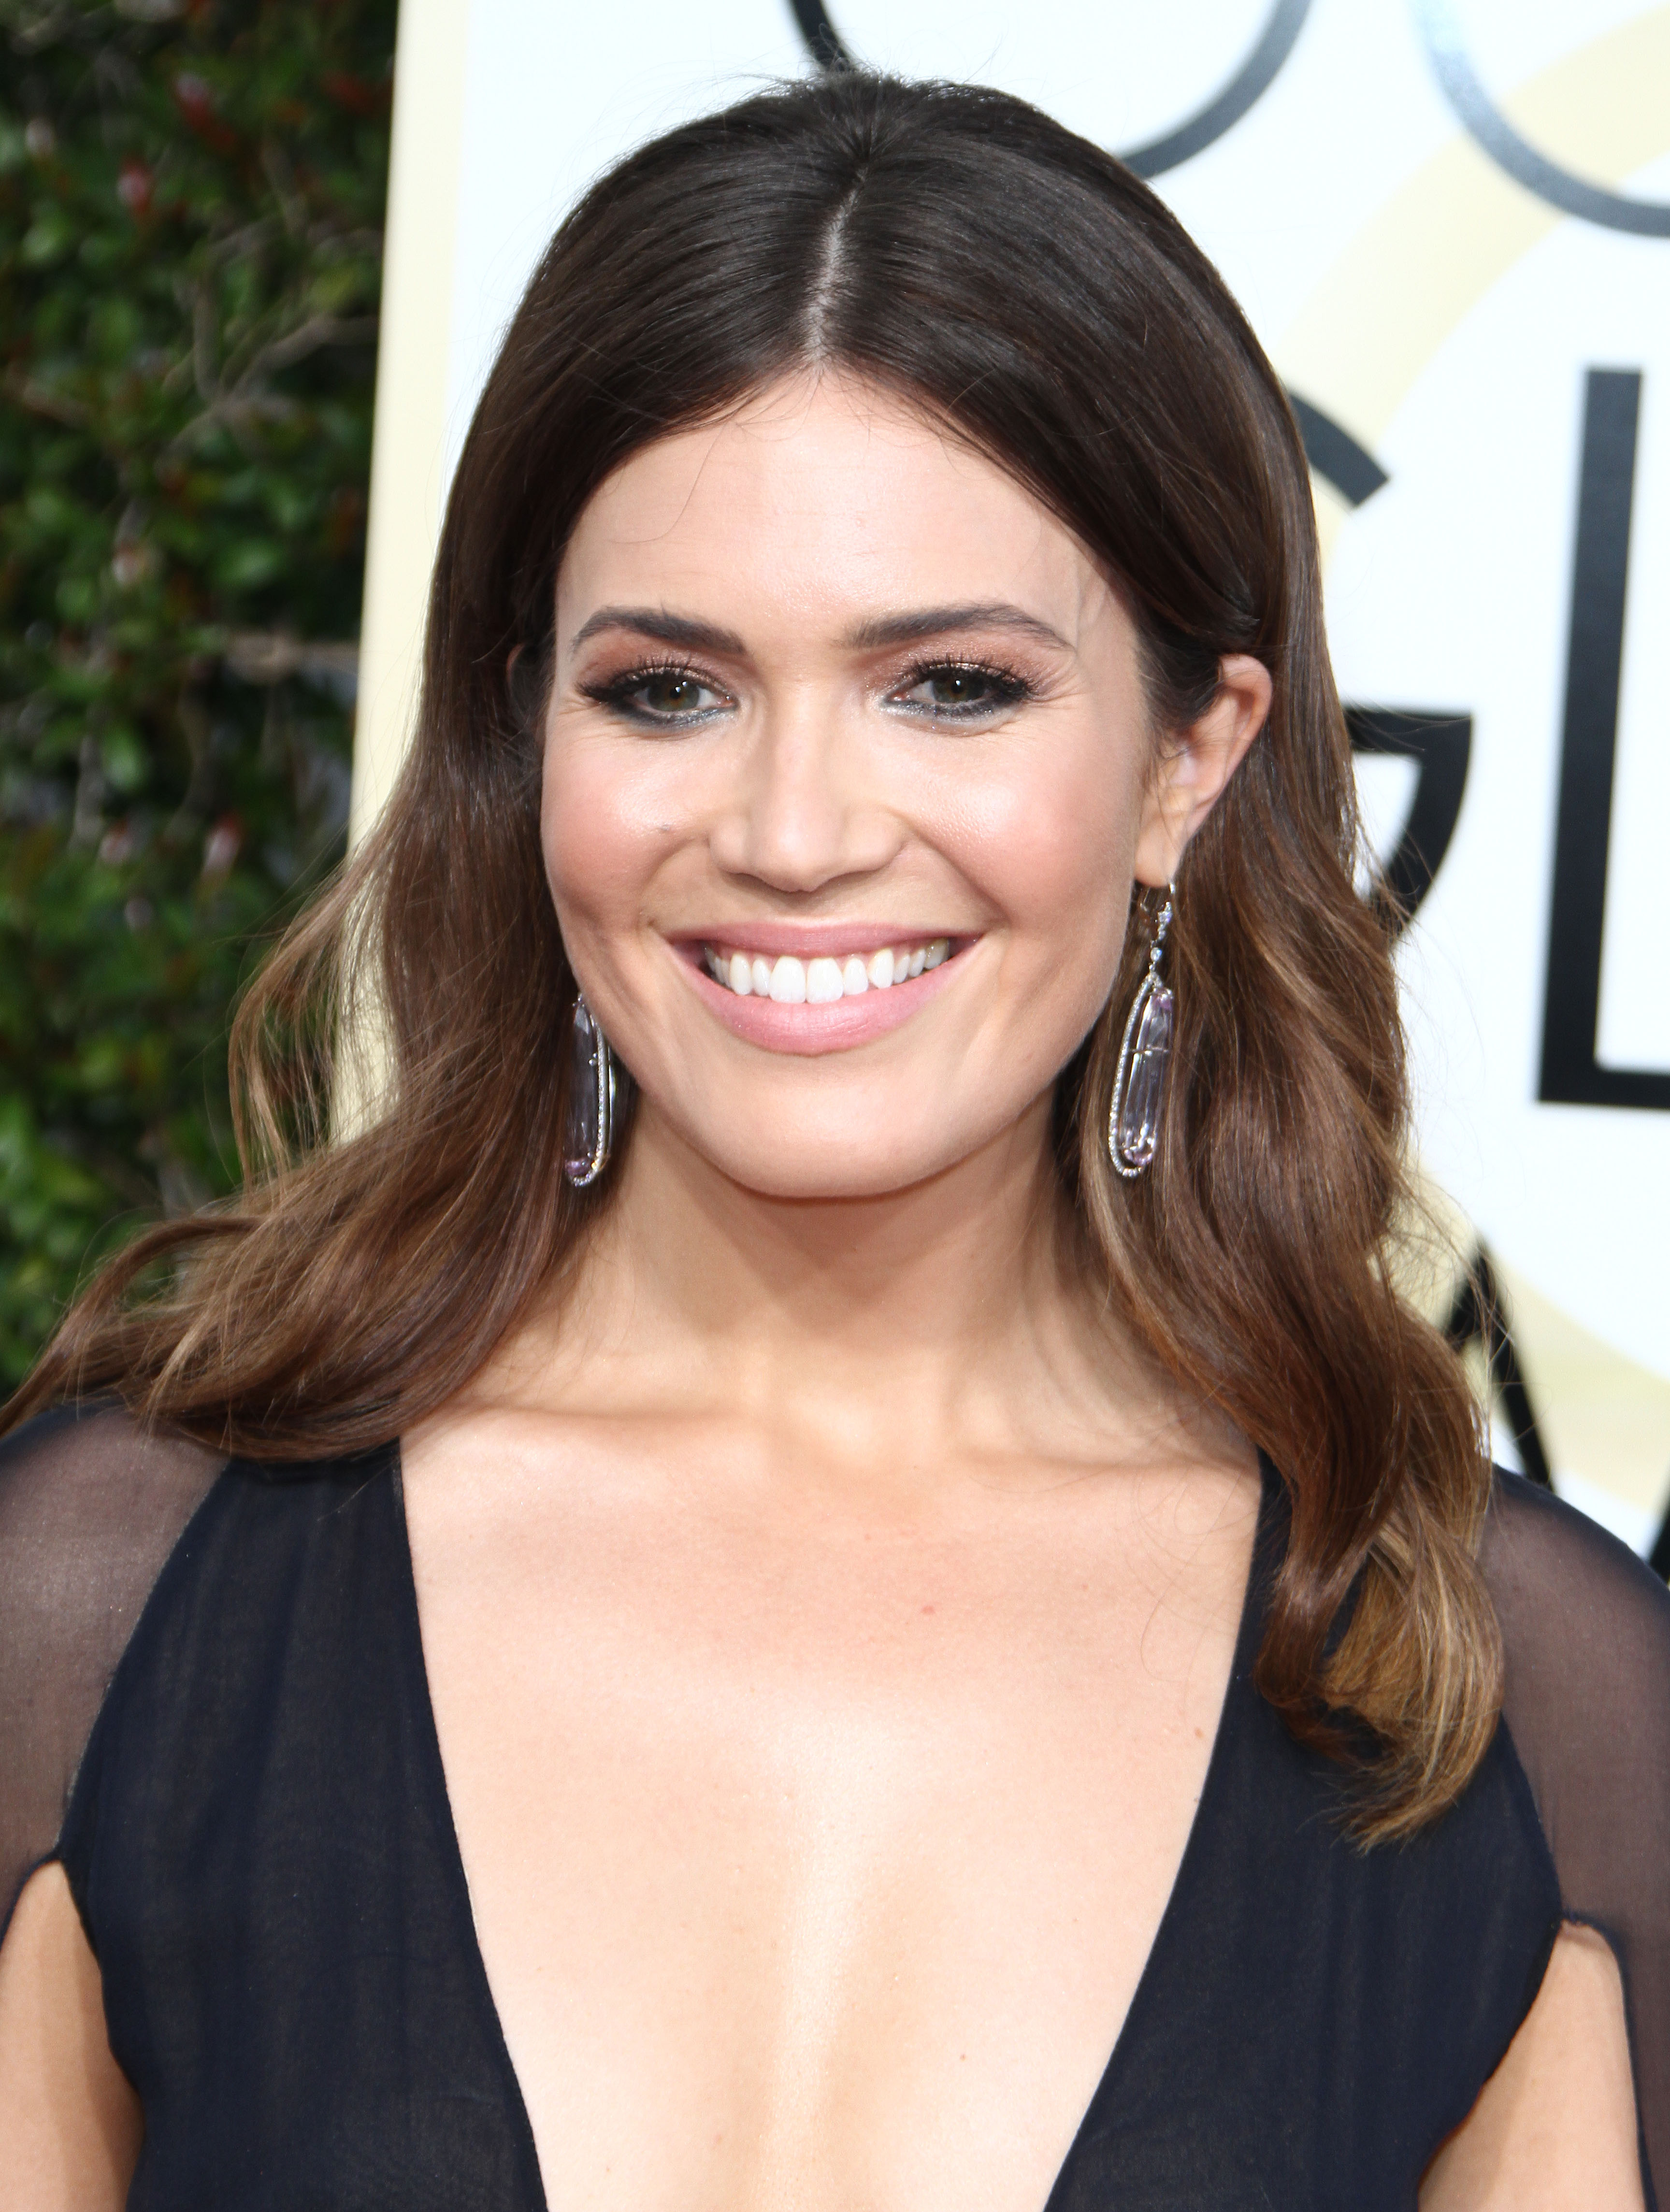 Golden Globes 2017: Mandy Moore Goes For the Cape